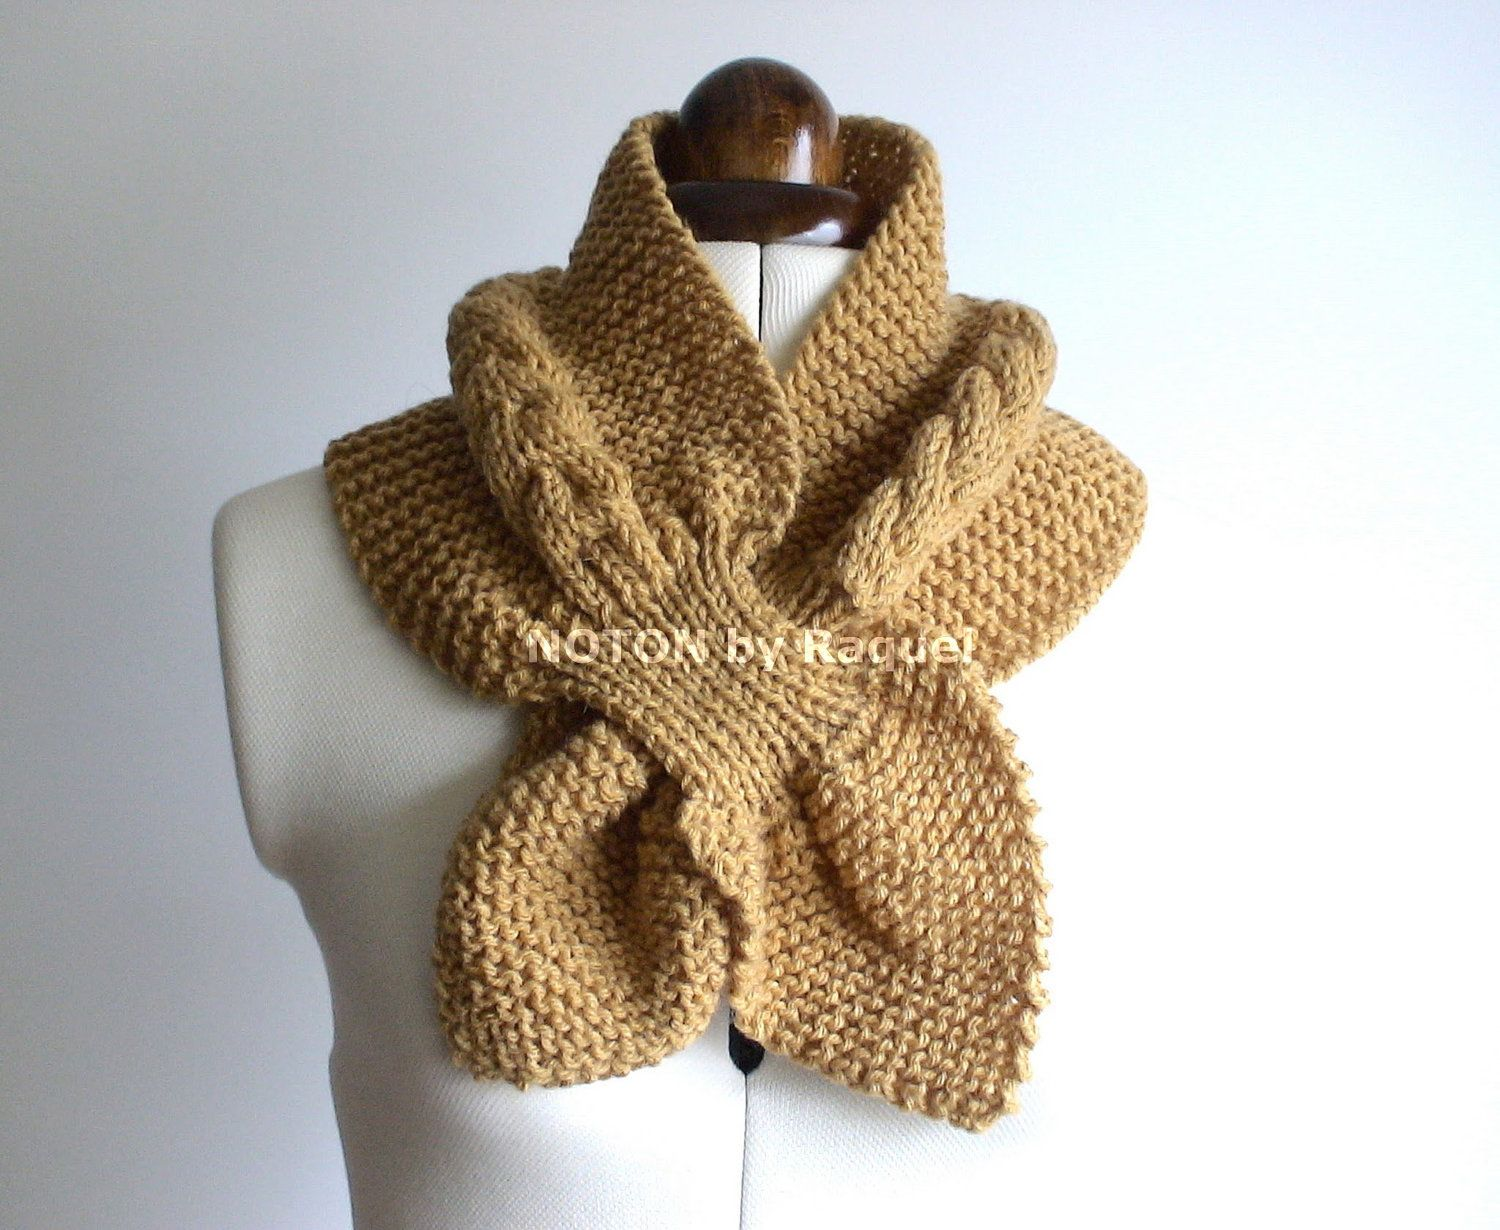 Love this to keep warm this winter